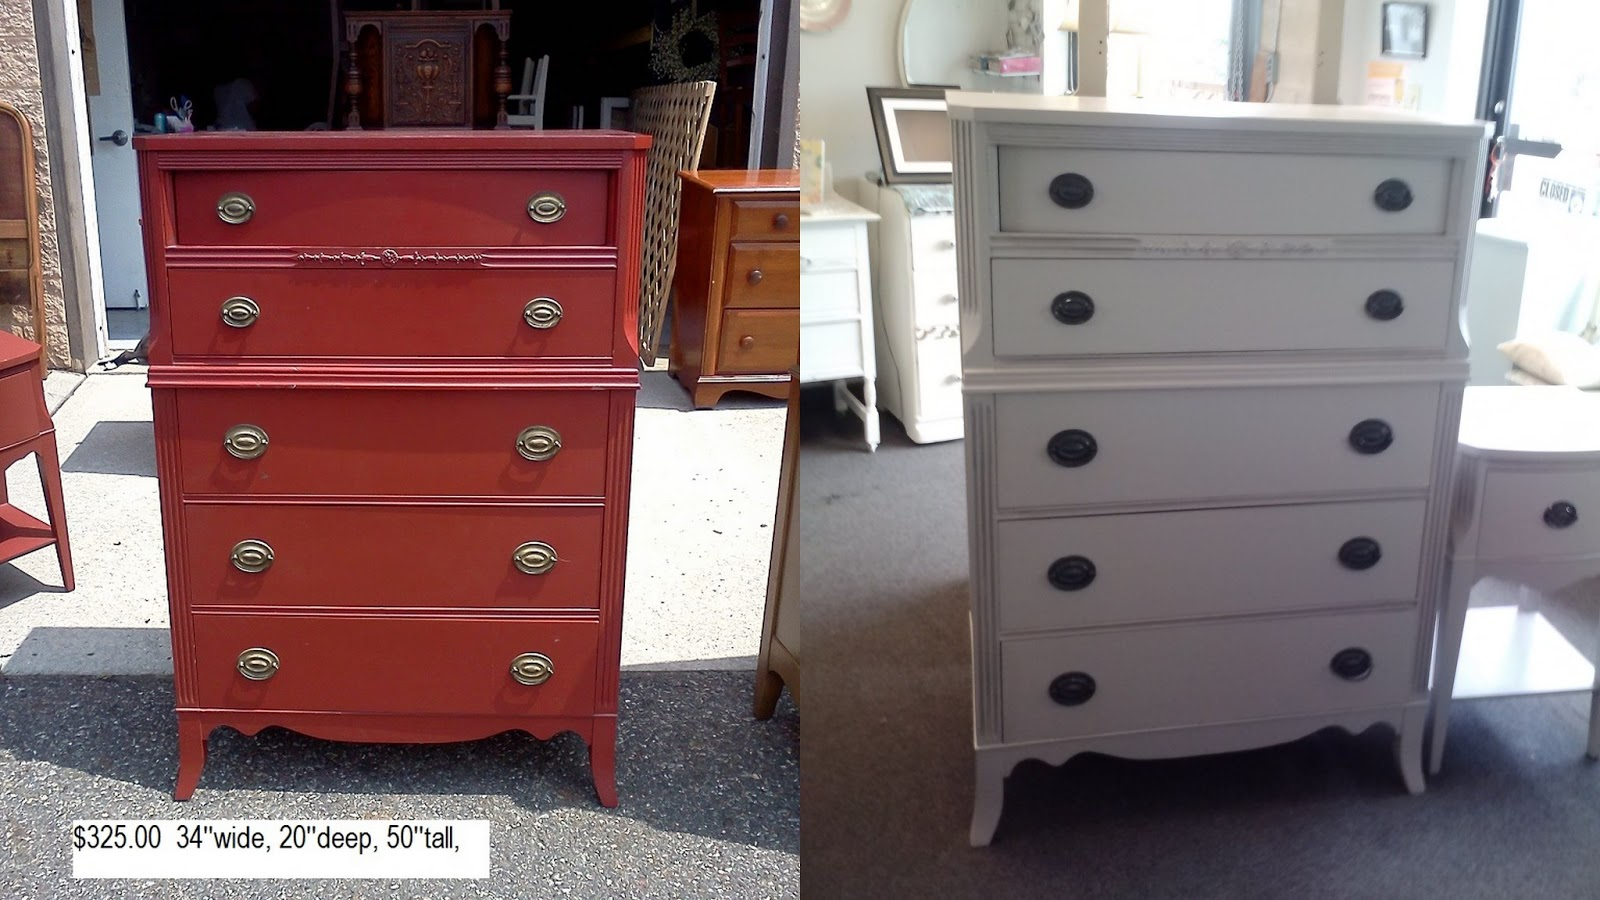 Painting furniture shabby chic - Before And After Vintage Painted Shabby Chic Furniture Dressers